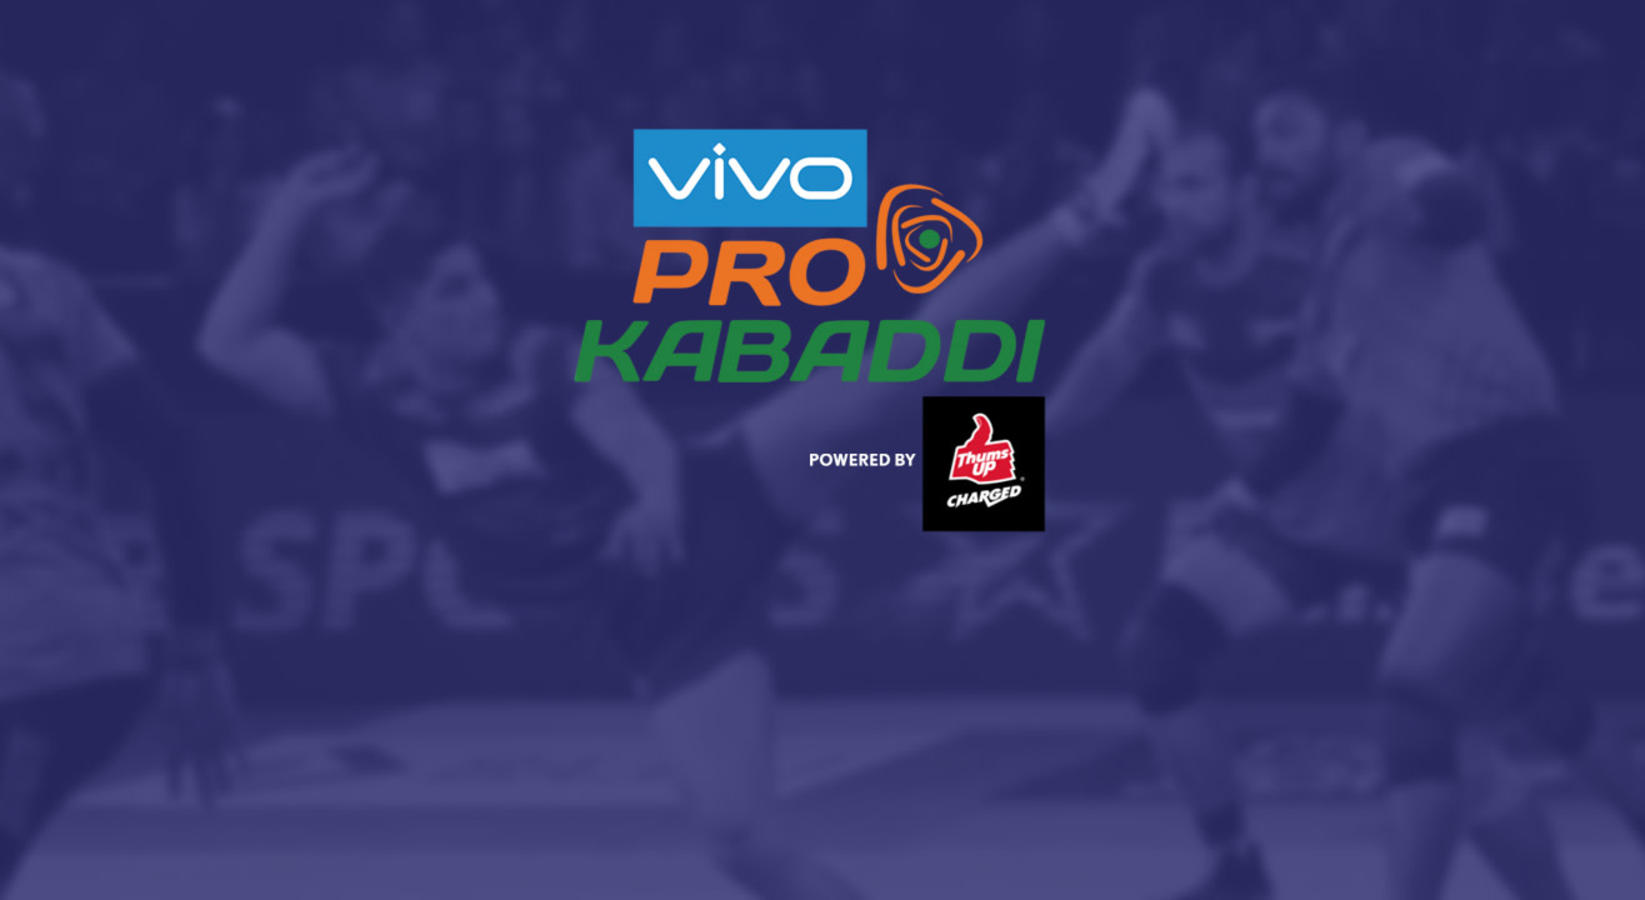 VIVO Pro Kabaddi 2018-19: Match Tickets, sign ups, schedule, teams, squads & more!